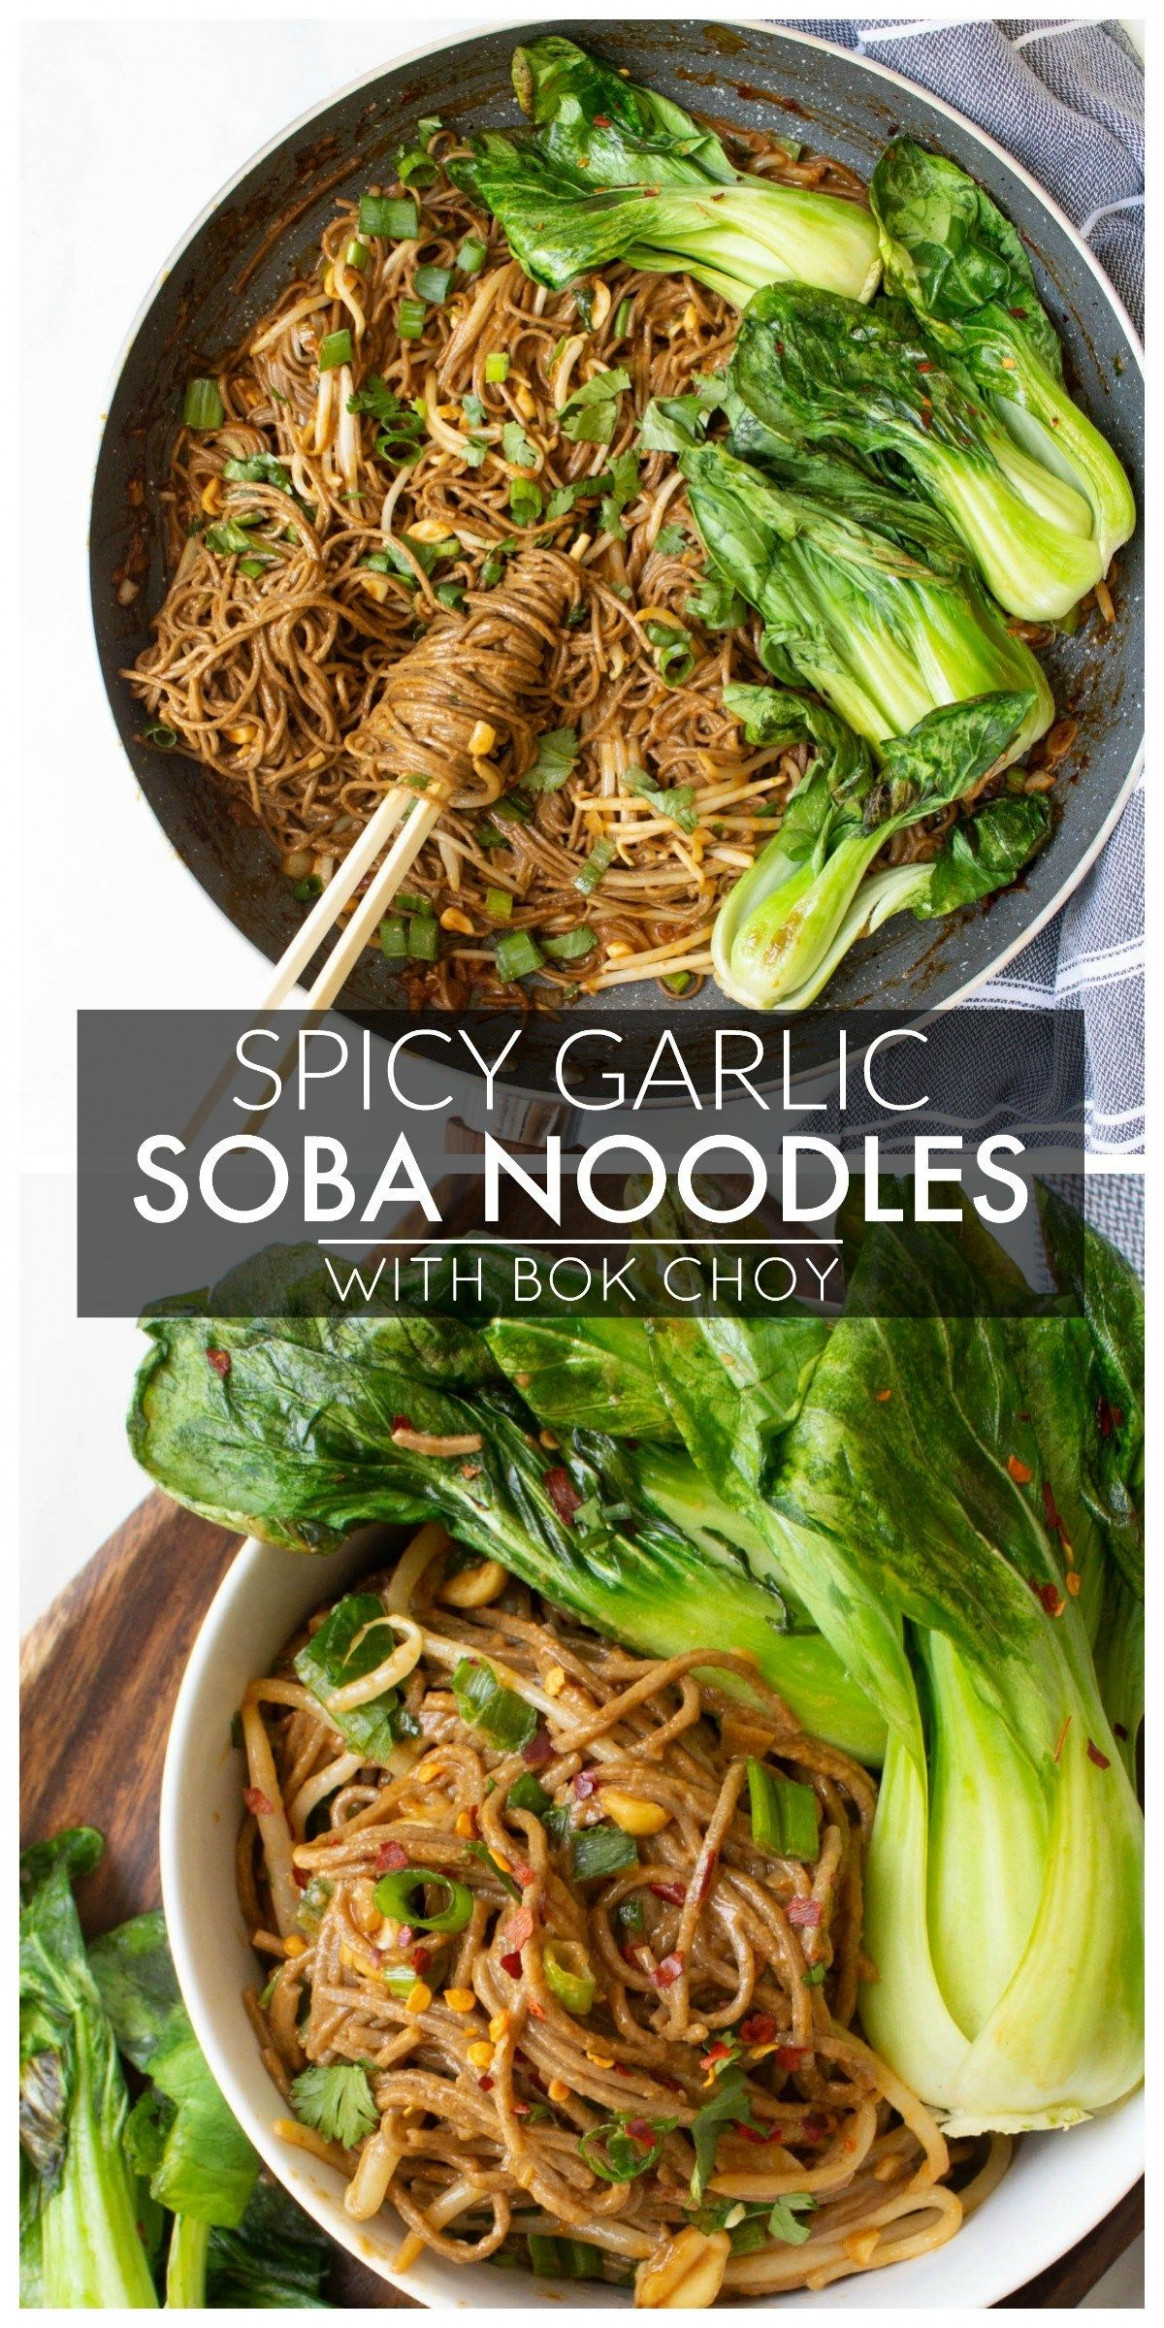 Spicy Garlic Soba Noodles with Bok Choy - recipes vegetarian noodles